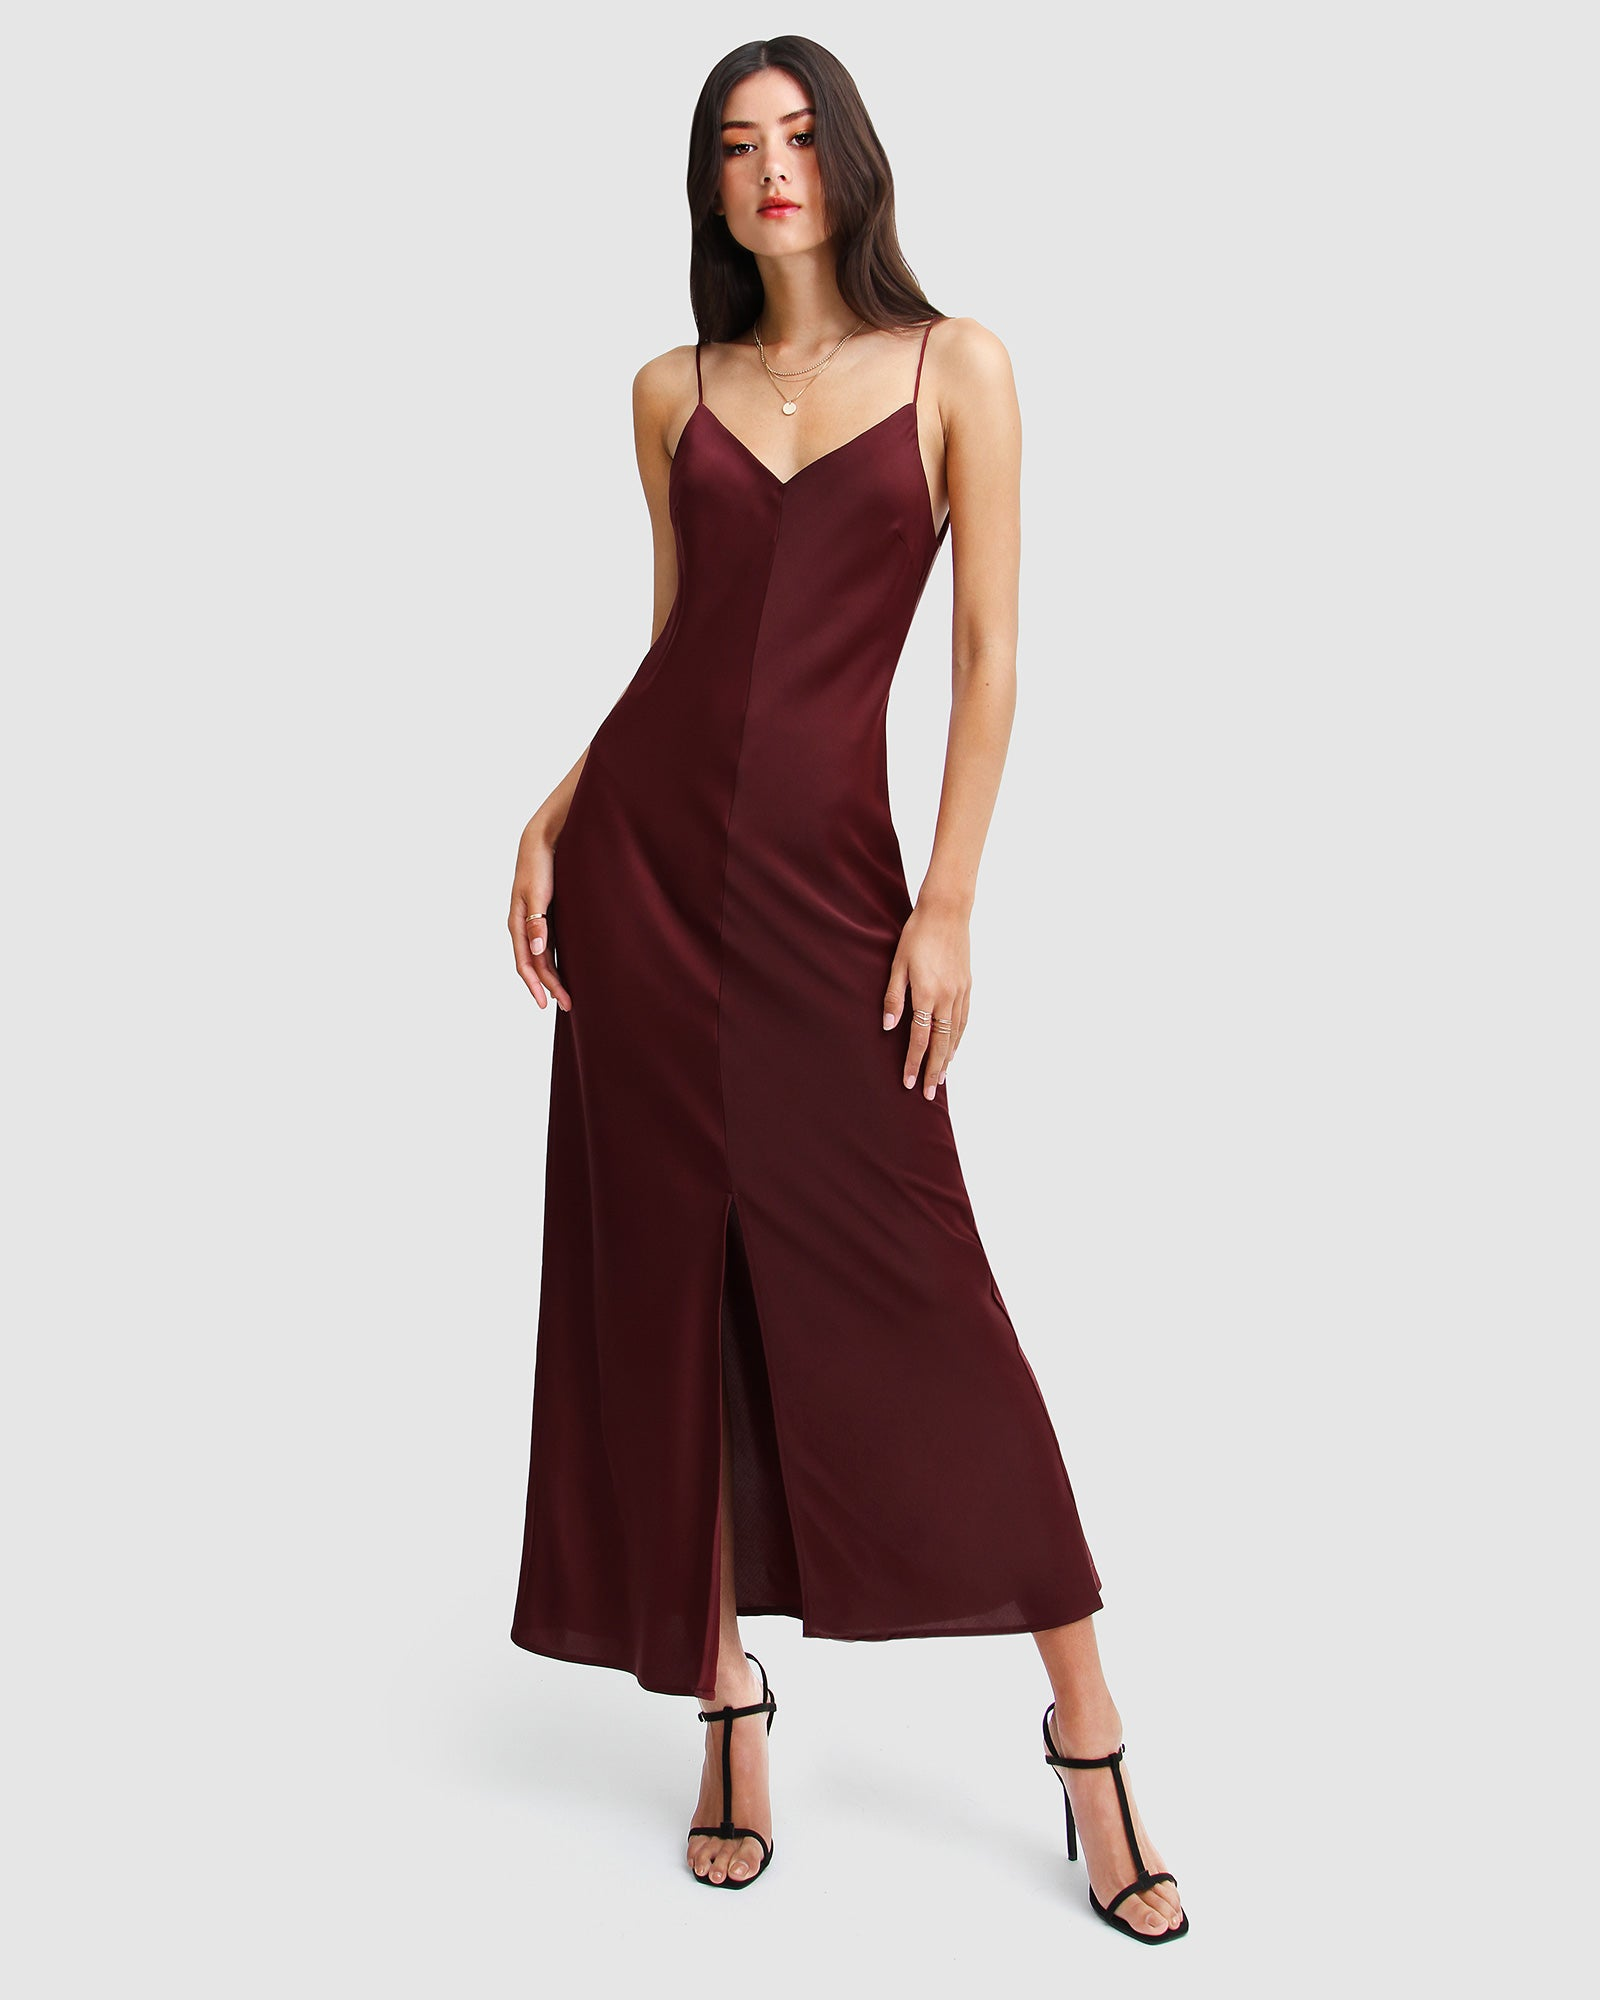 slip-up-burgindy-slip-dress-front.jpg